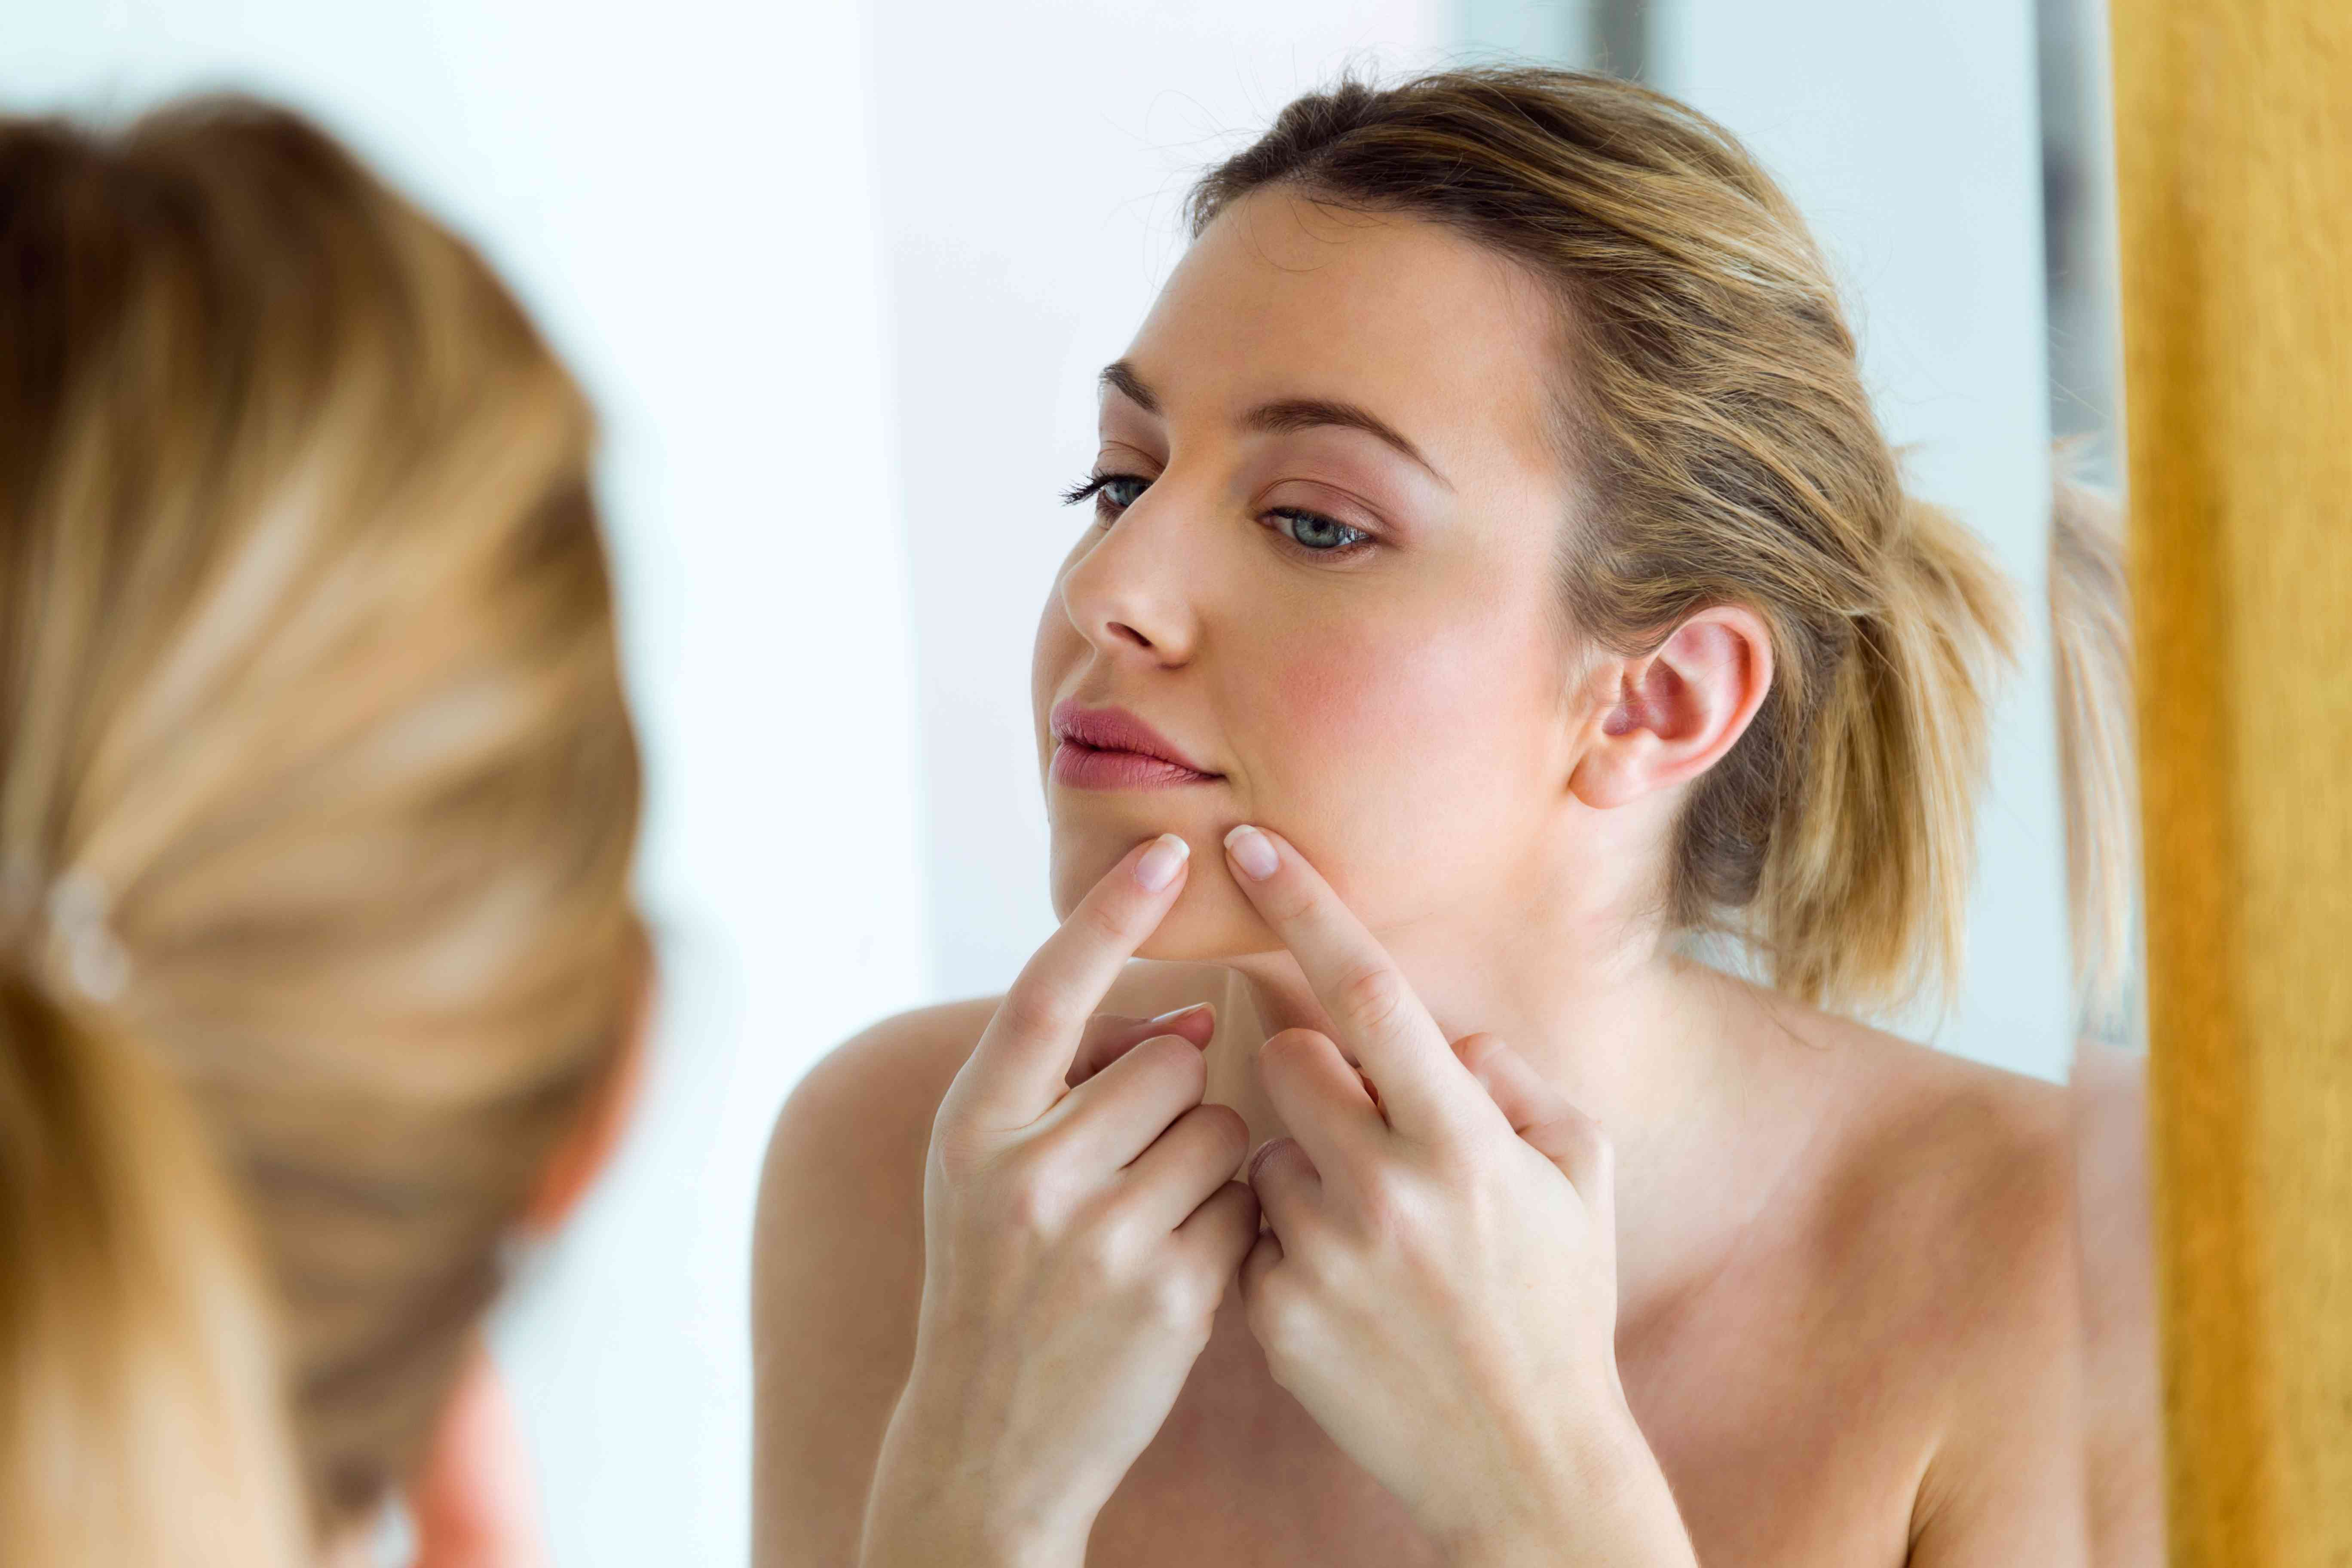 Beautiful young woman removing pimple from her face in a bathroom home.